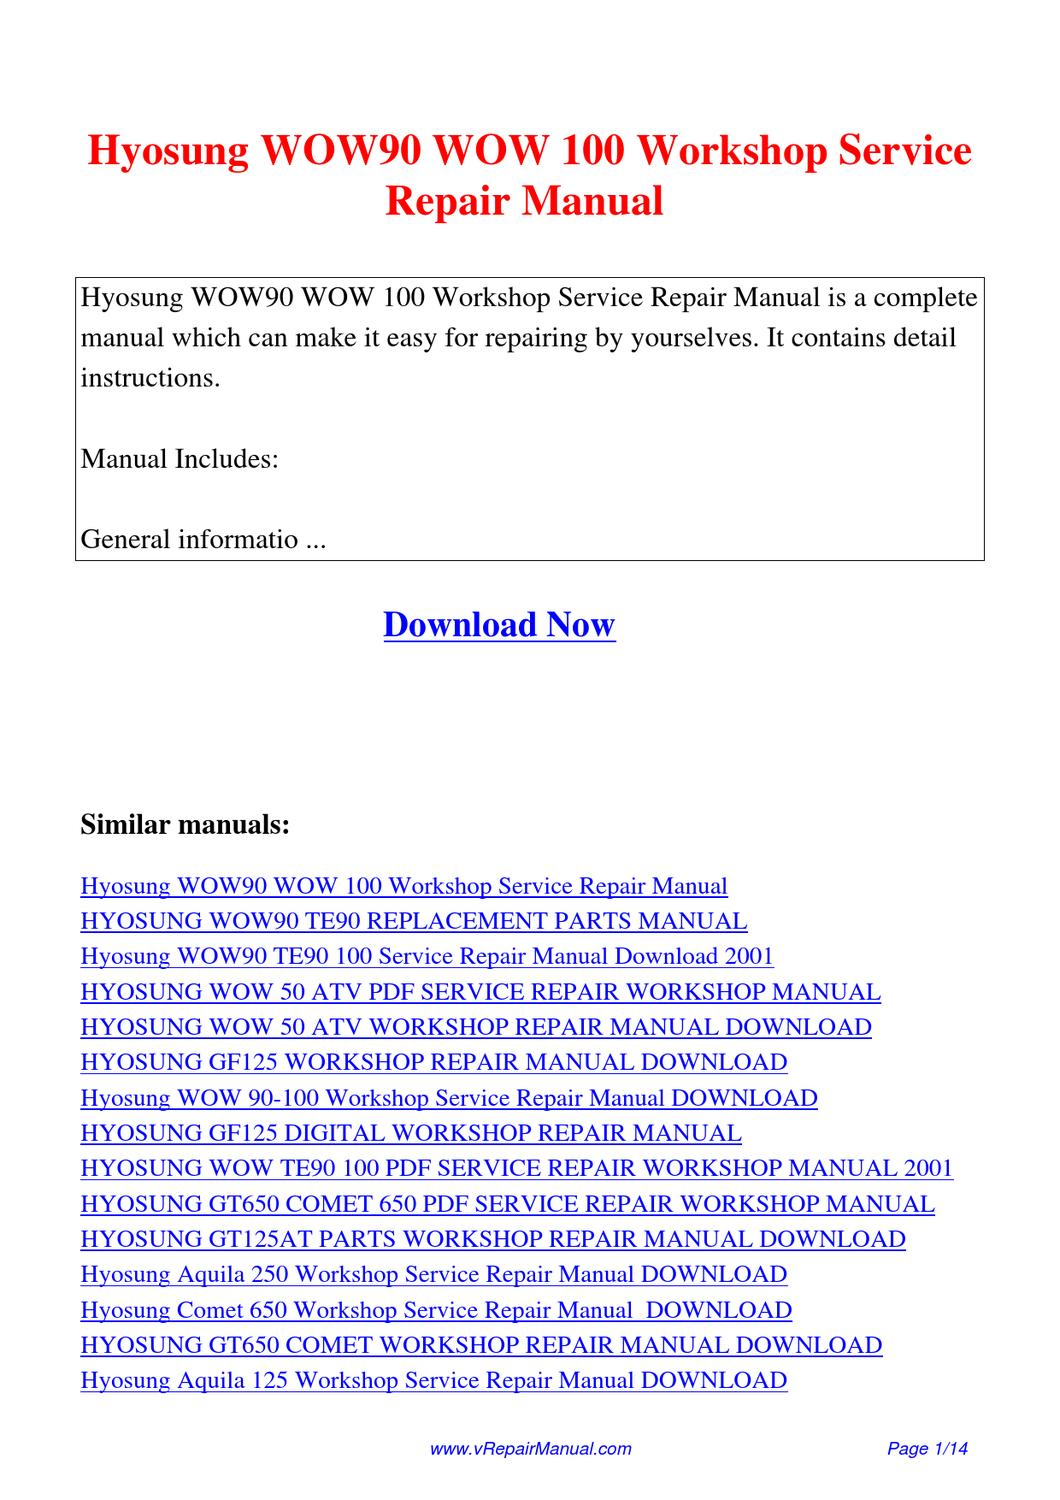 Hyosung_WOW90_WOW_100_Workshop_Service_Repair_Manual by Huang Luan - issuu